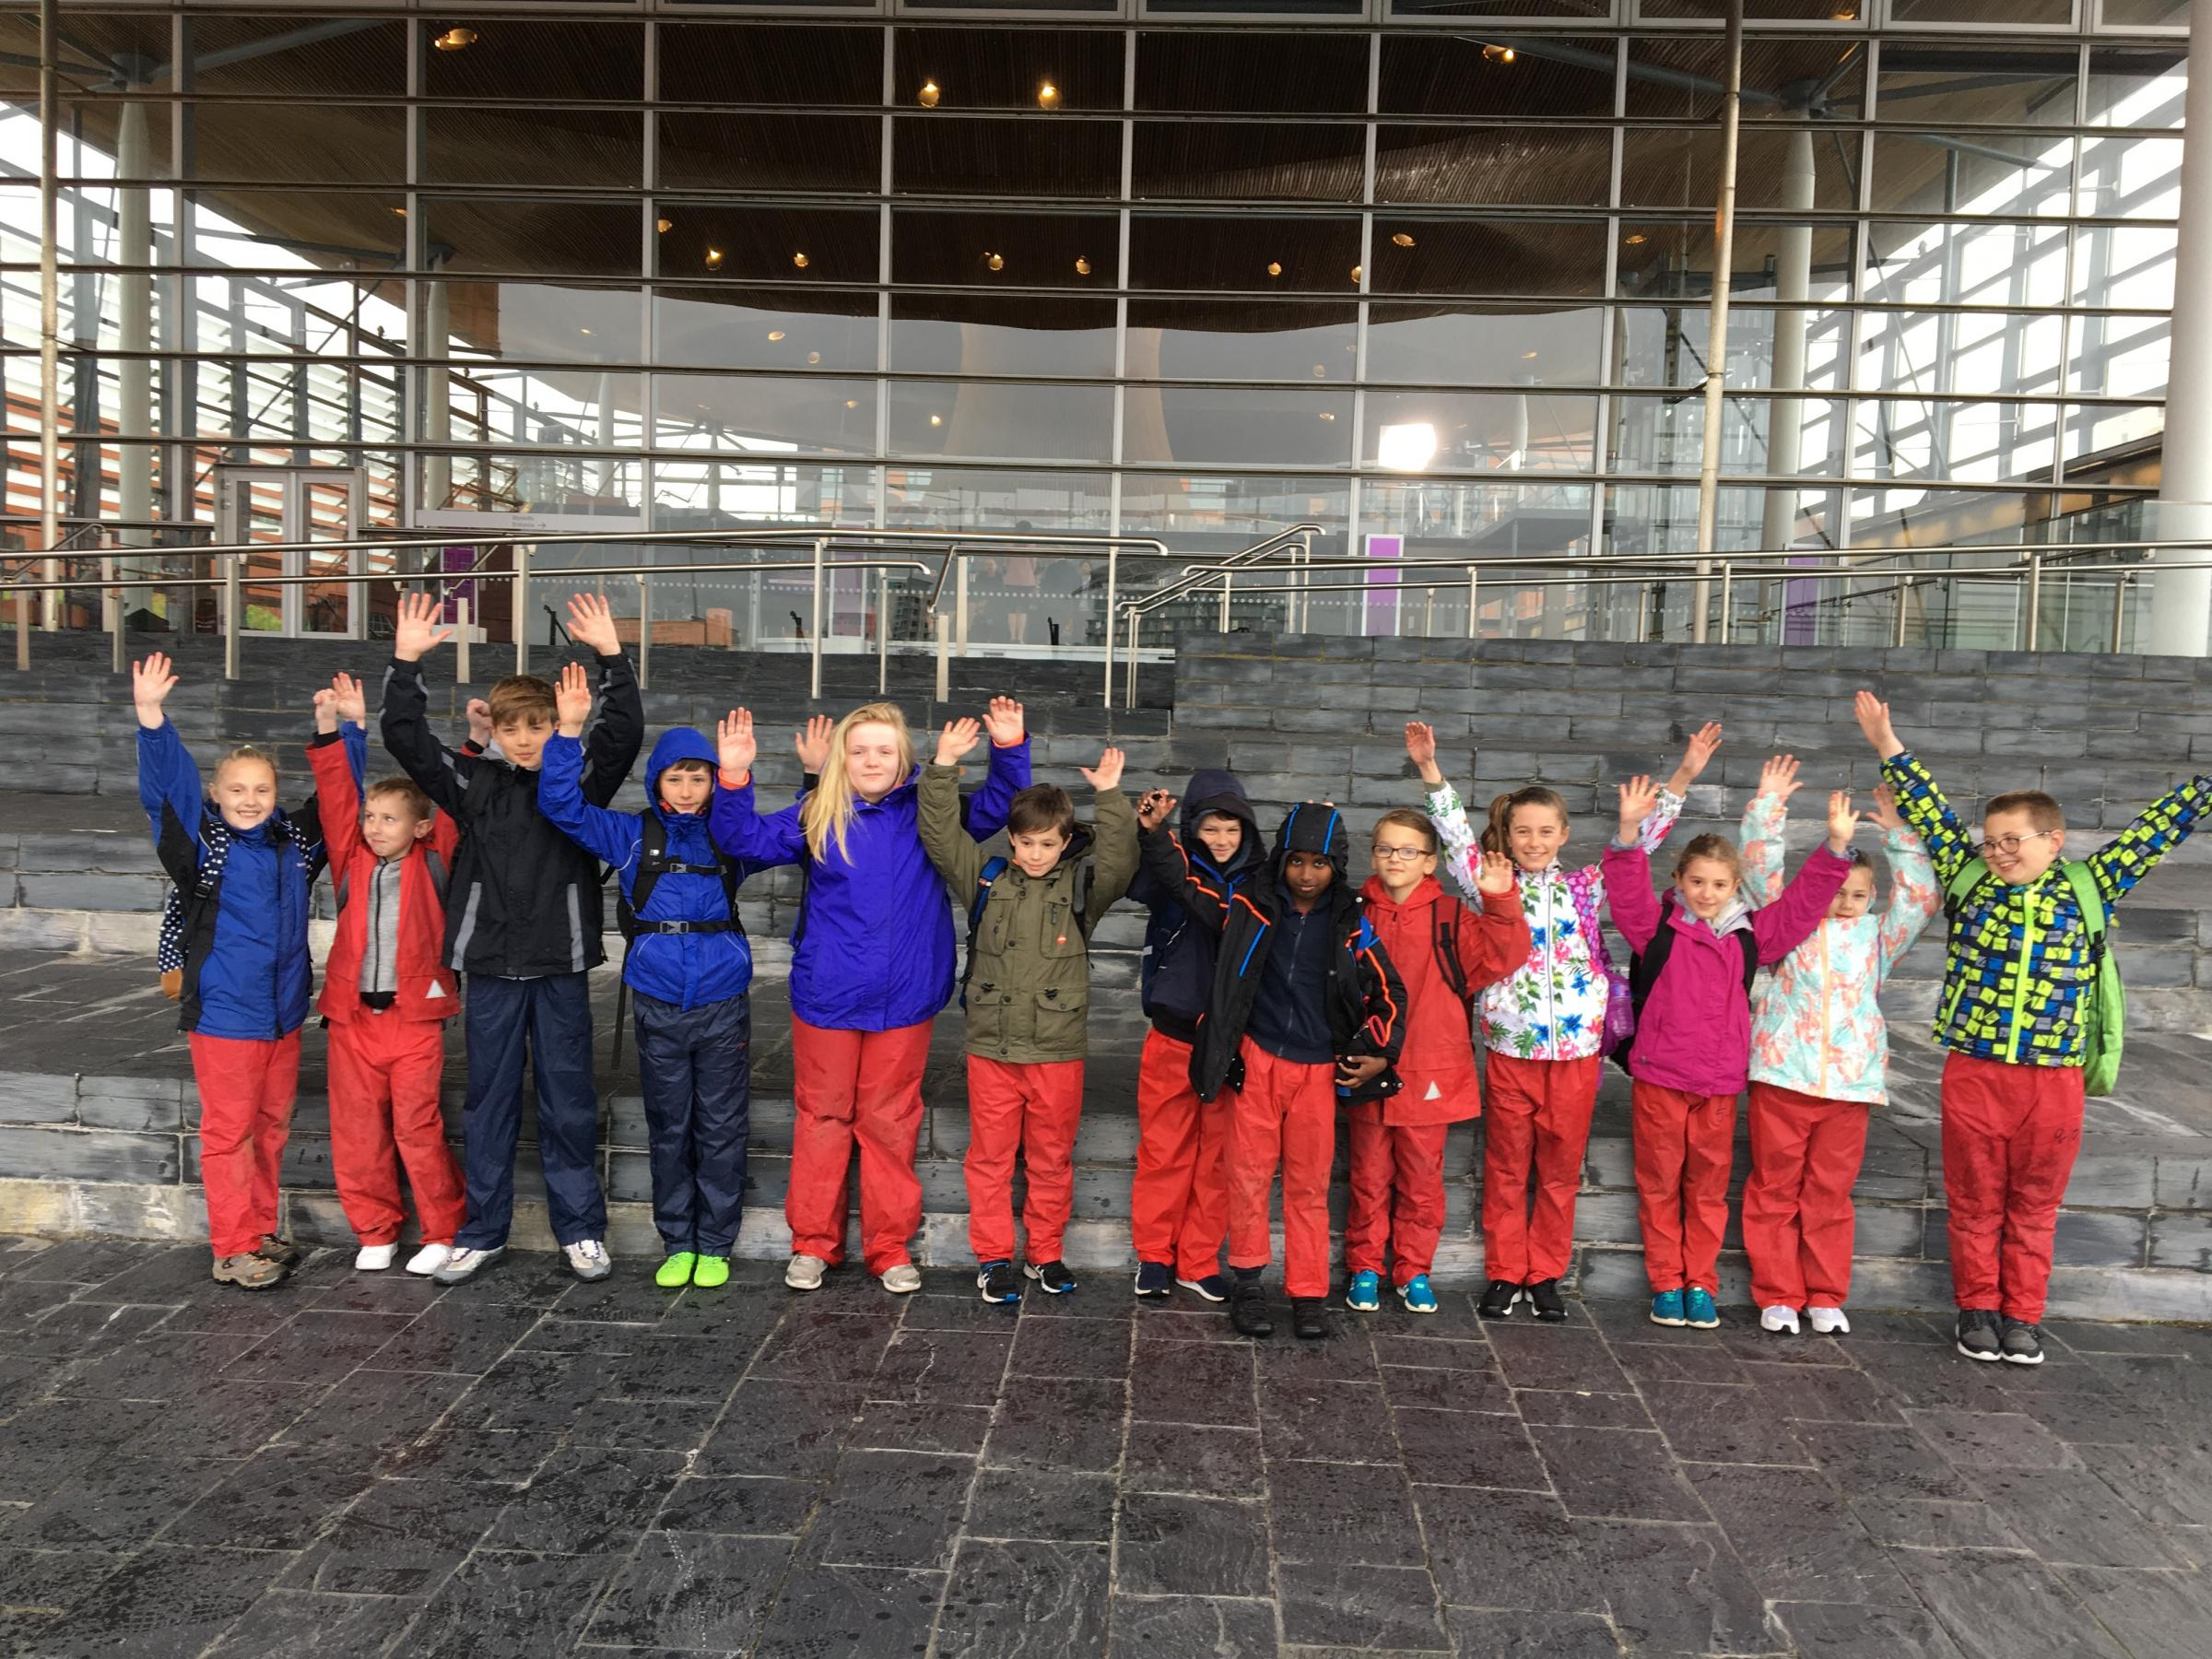 The children walked from the Senedd to St Cadoc's Primary in Cardiff as part of the initiative